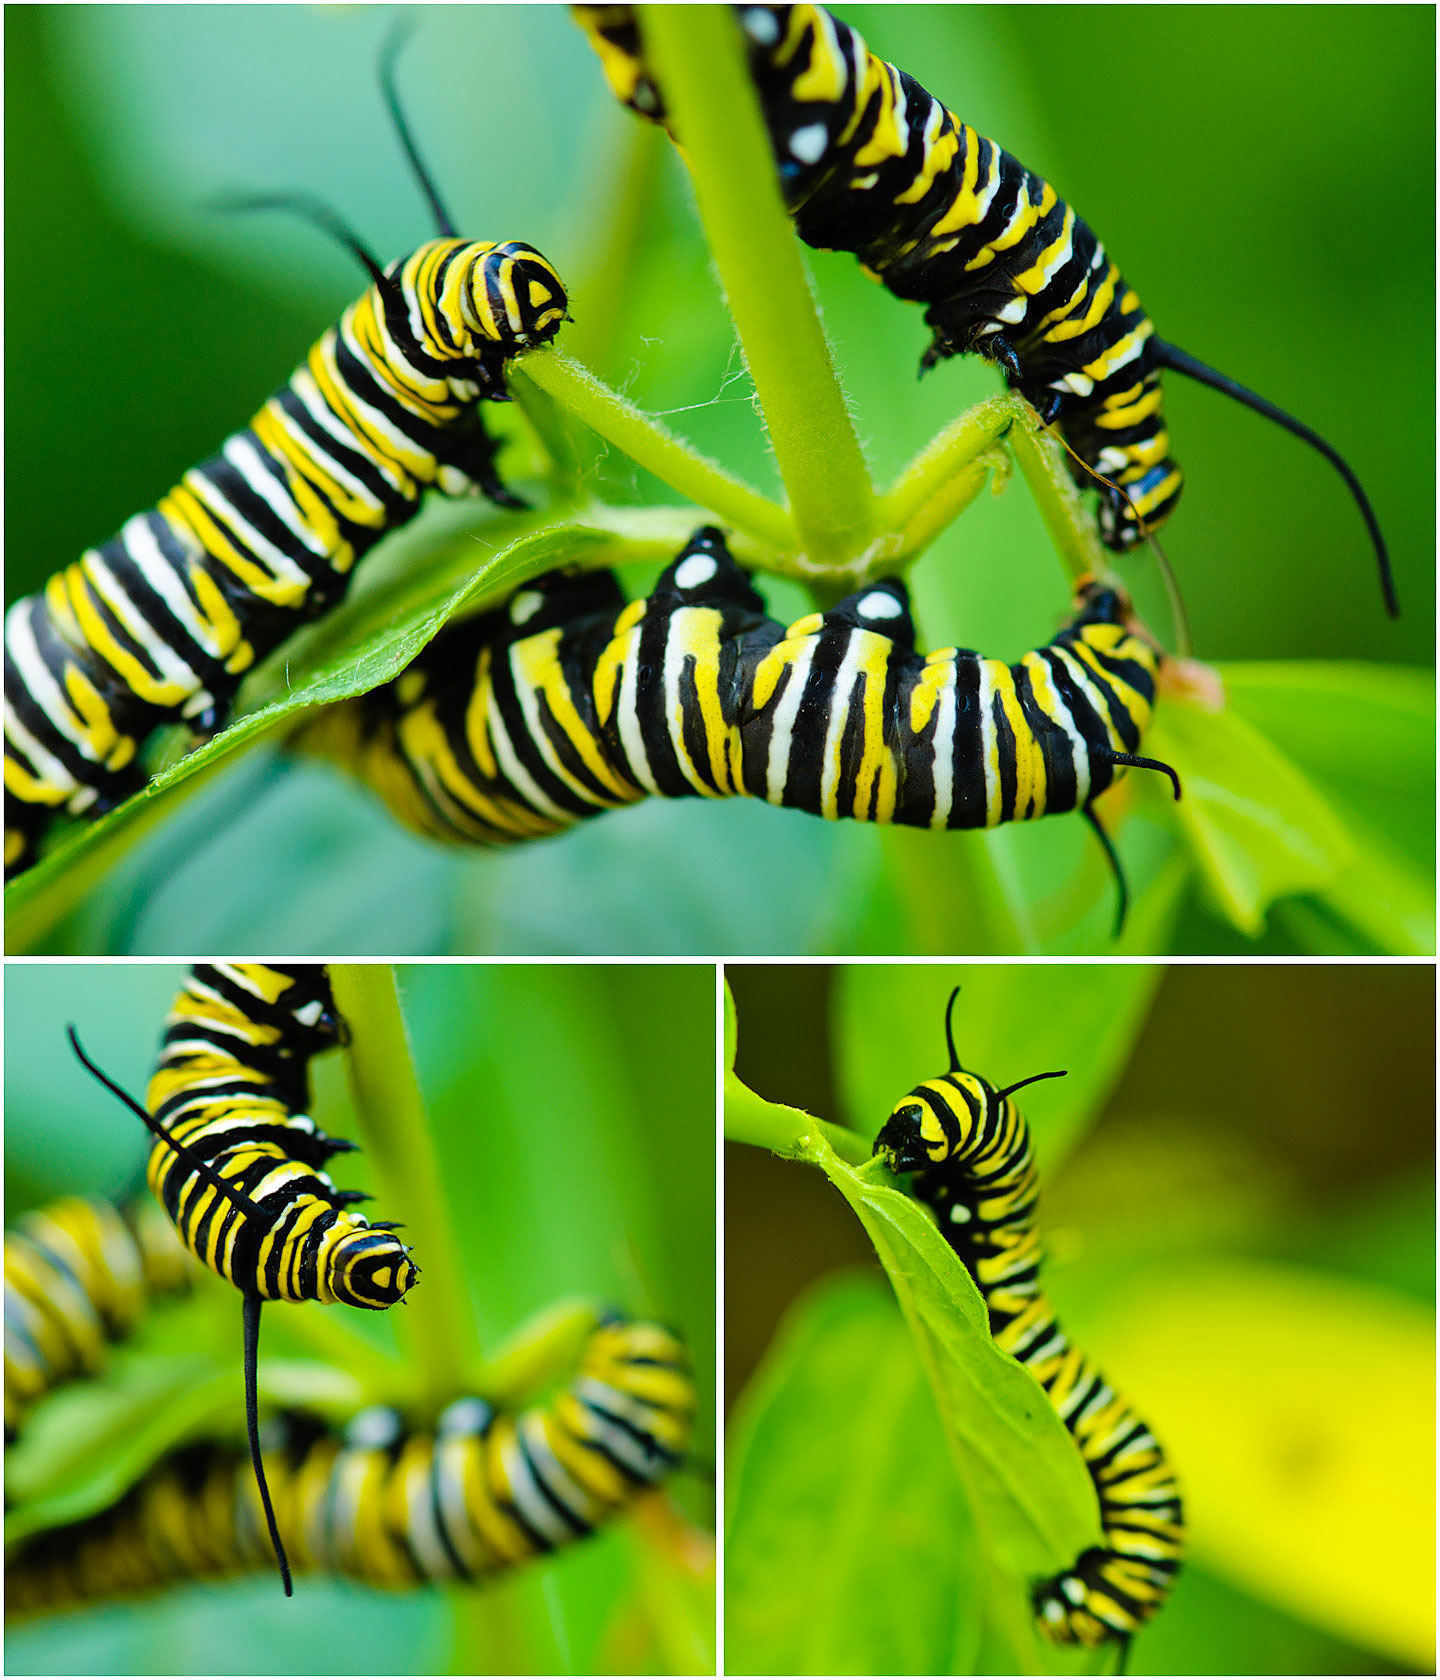 Please help save the Monarchs by planting milkweed! A story about Monarch butterflys at My Painted Door (.com)